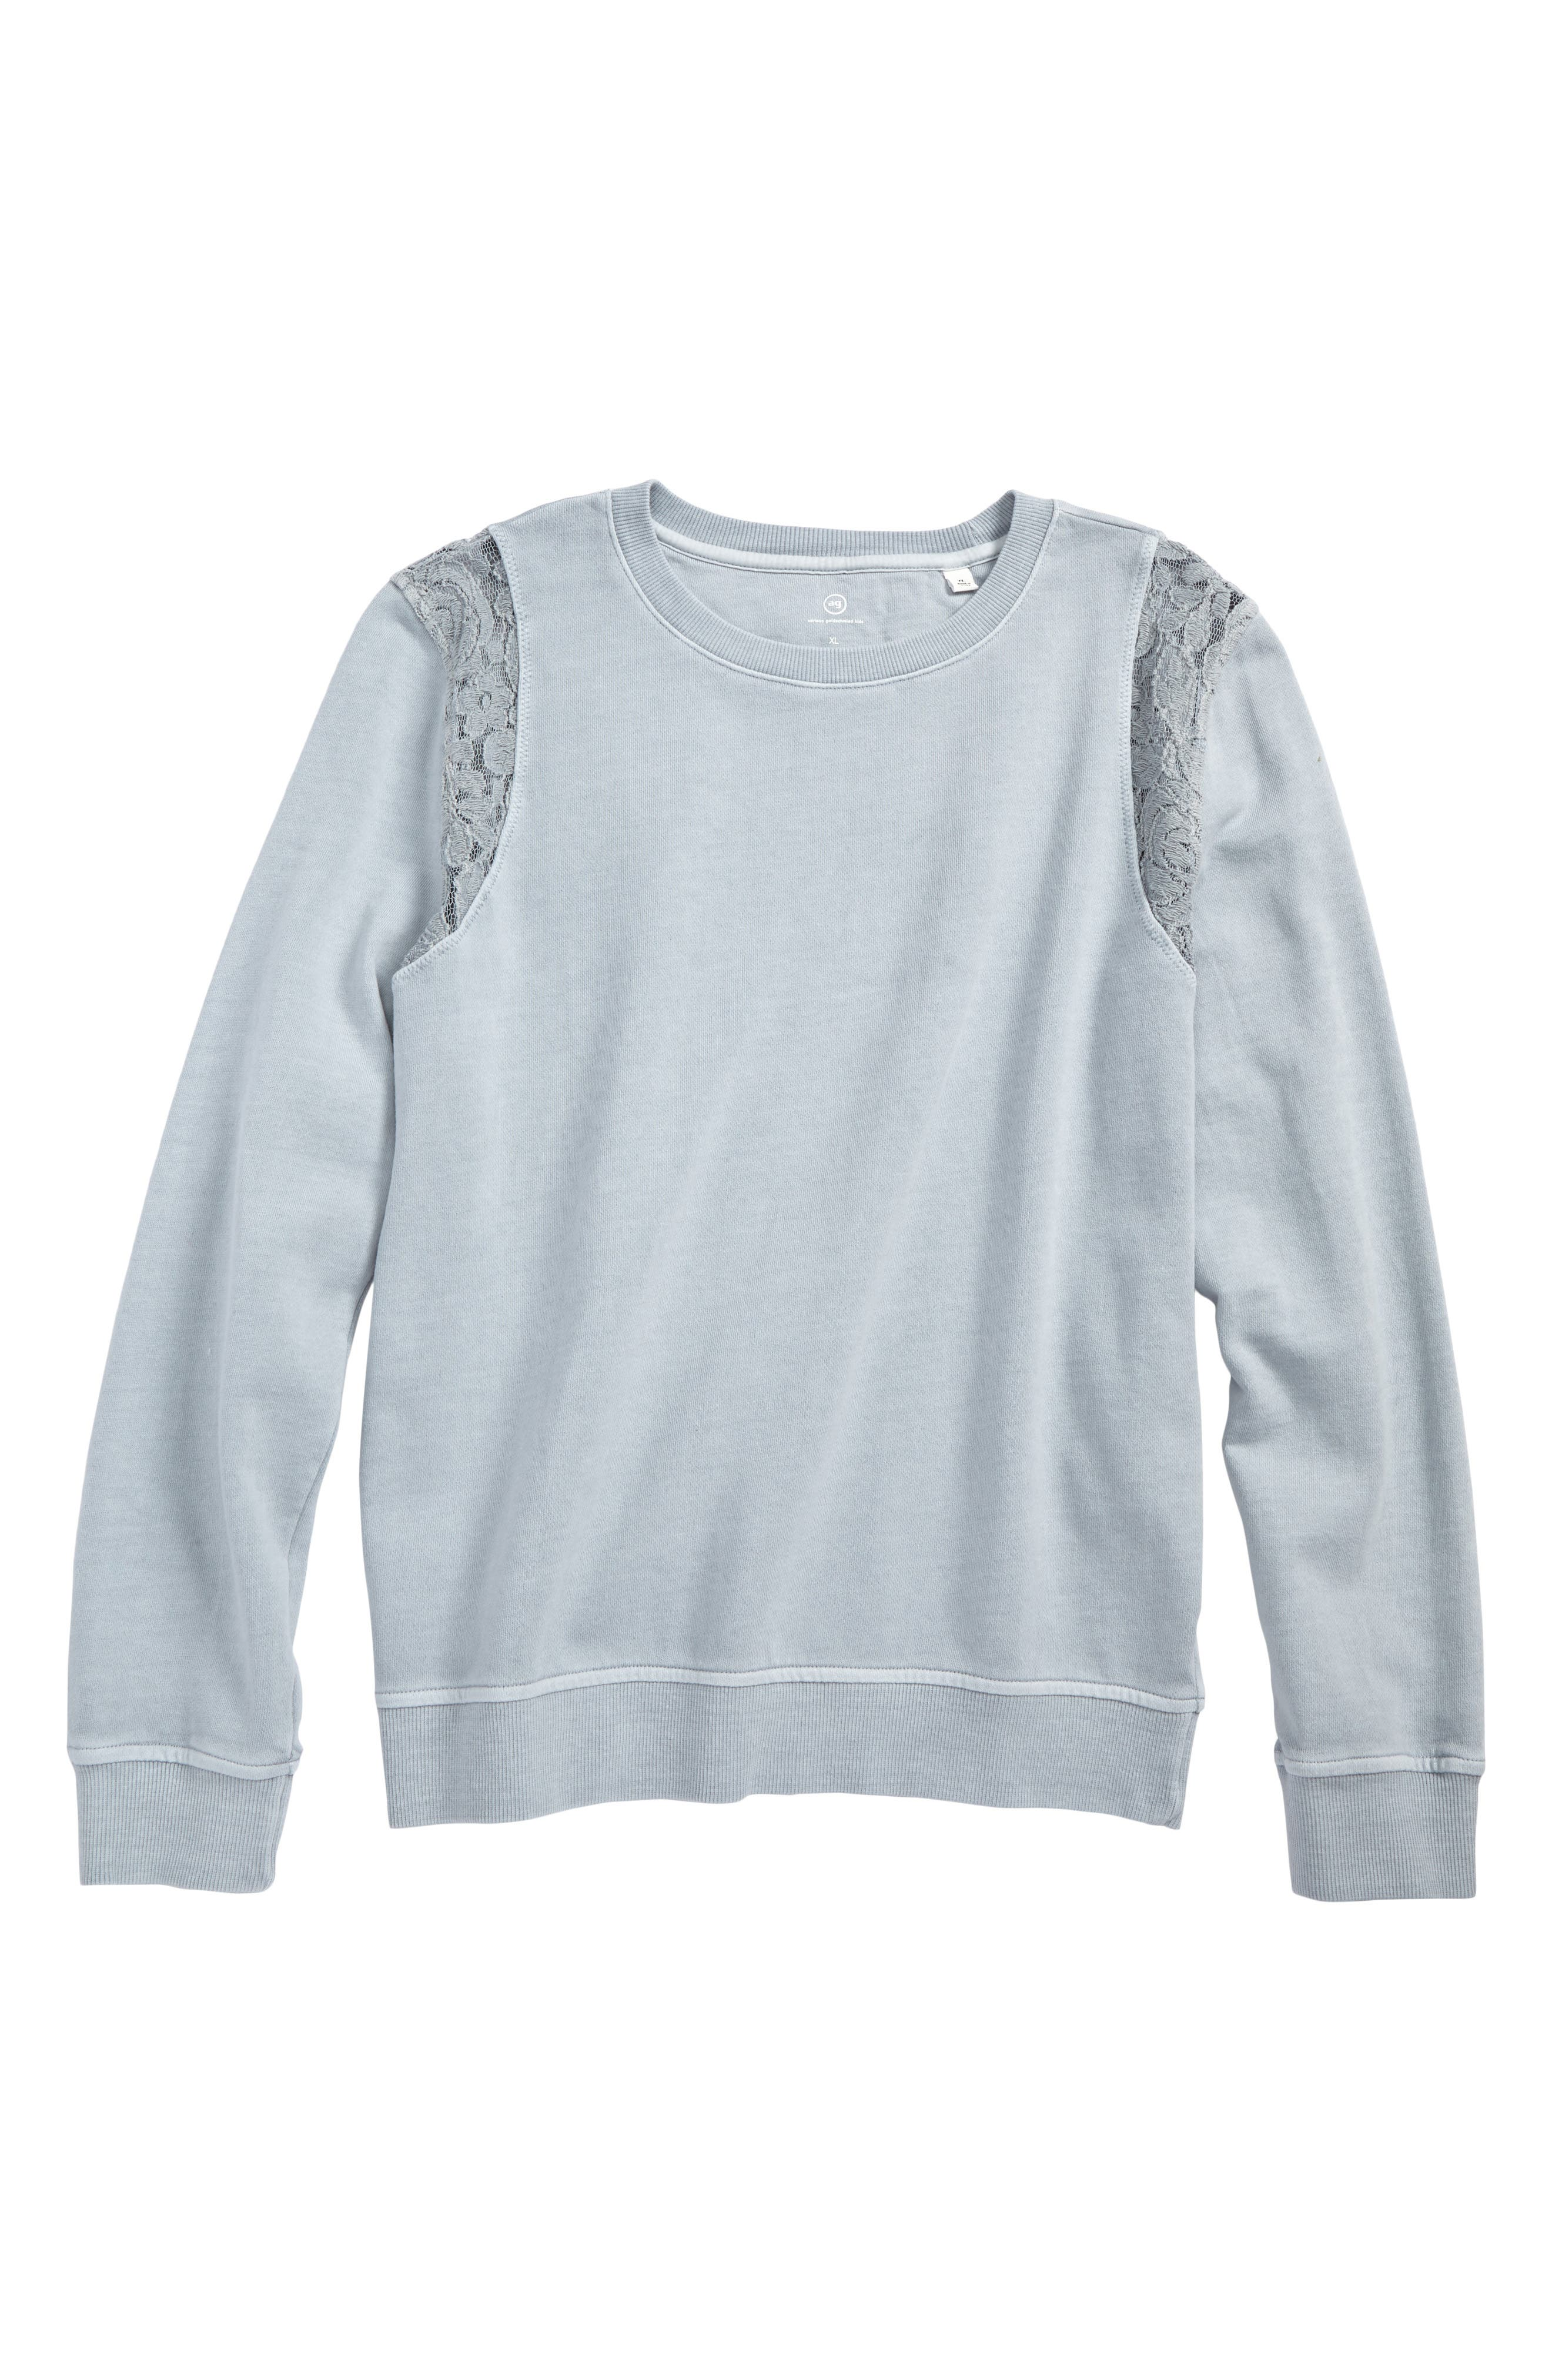 Alternate Image 1 Selected - ag adriano goldschmied kids Lace Sweatshirt (Big Girls)